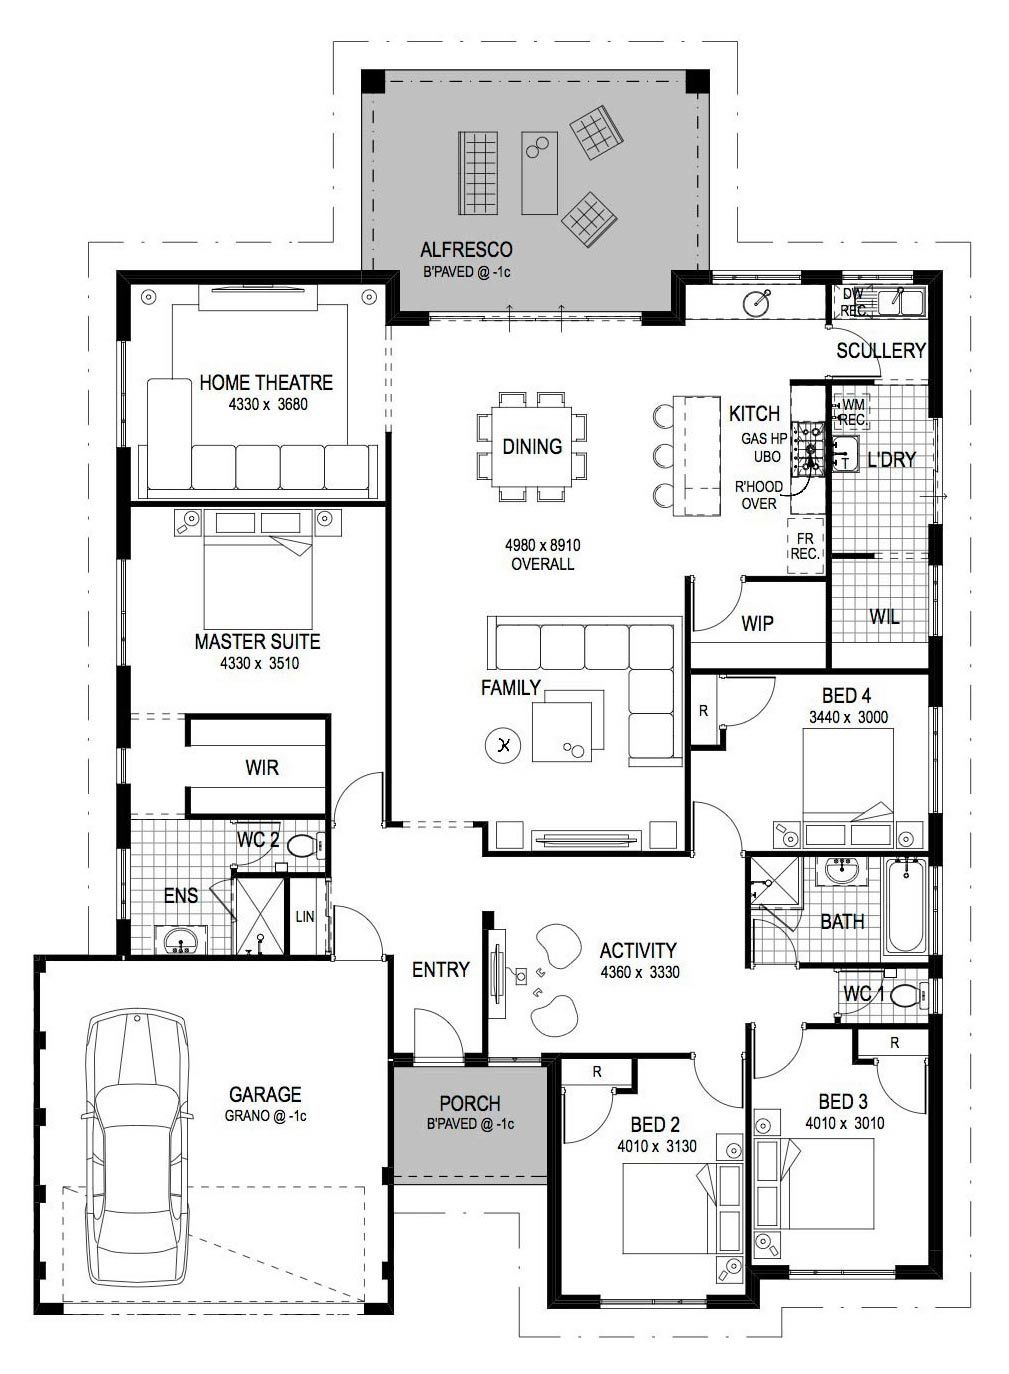 Cheap Home Builders Perth Wa Home Designs New House Plans House Blueprints How To Plan